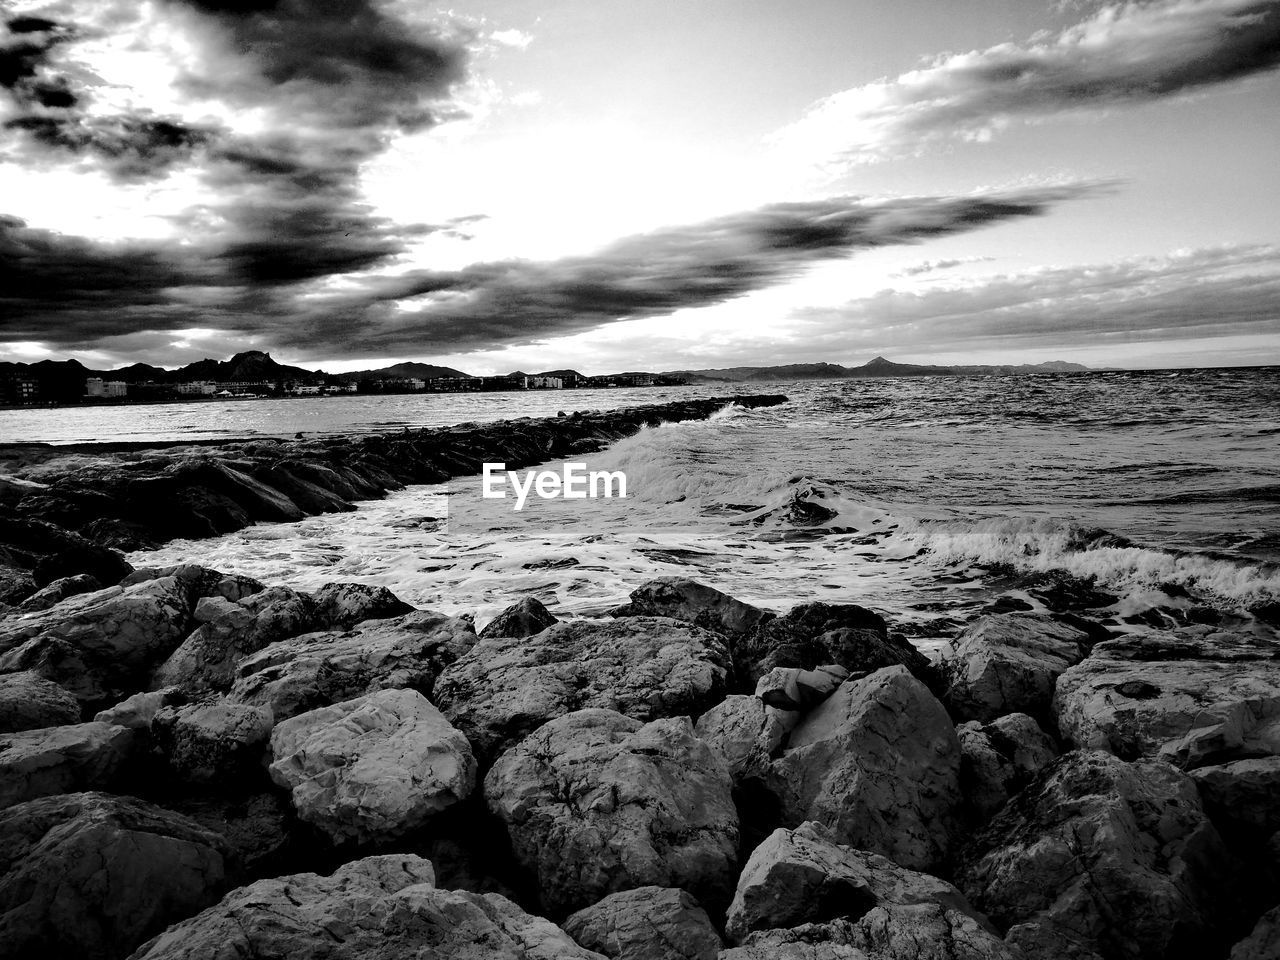 sea, water, nature, beauty in nature, beach, sky, shore, rock - object, cloud - sky, tranquil scene, tranquility, scenics, outdoors, no people, horizon over water, pebble beach, pebble, day, wave